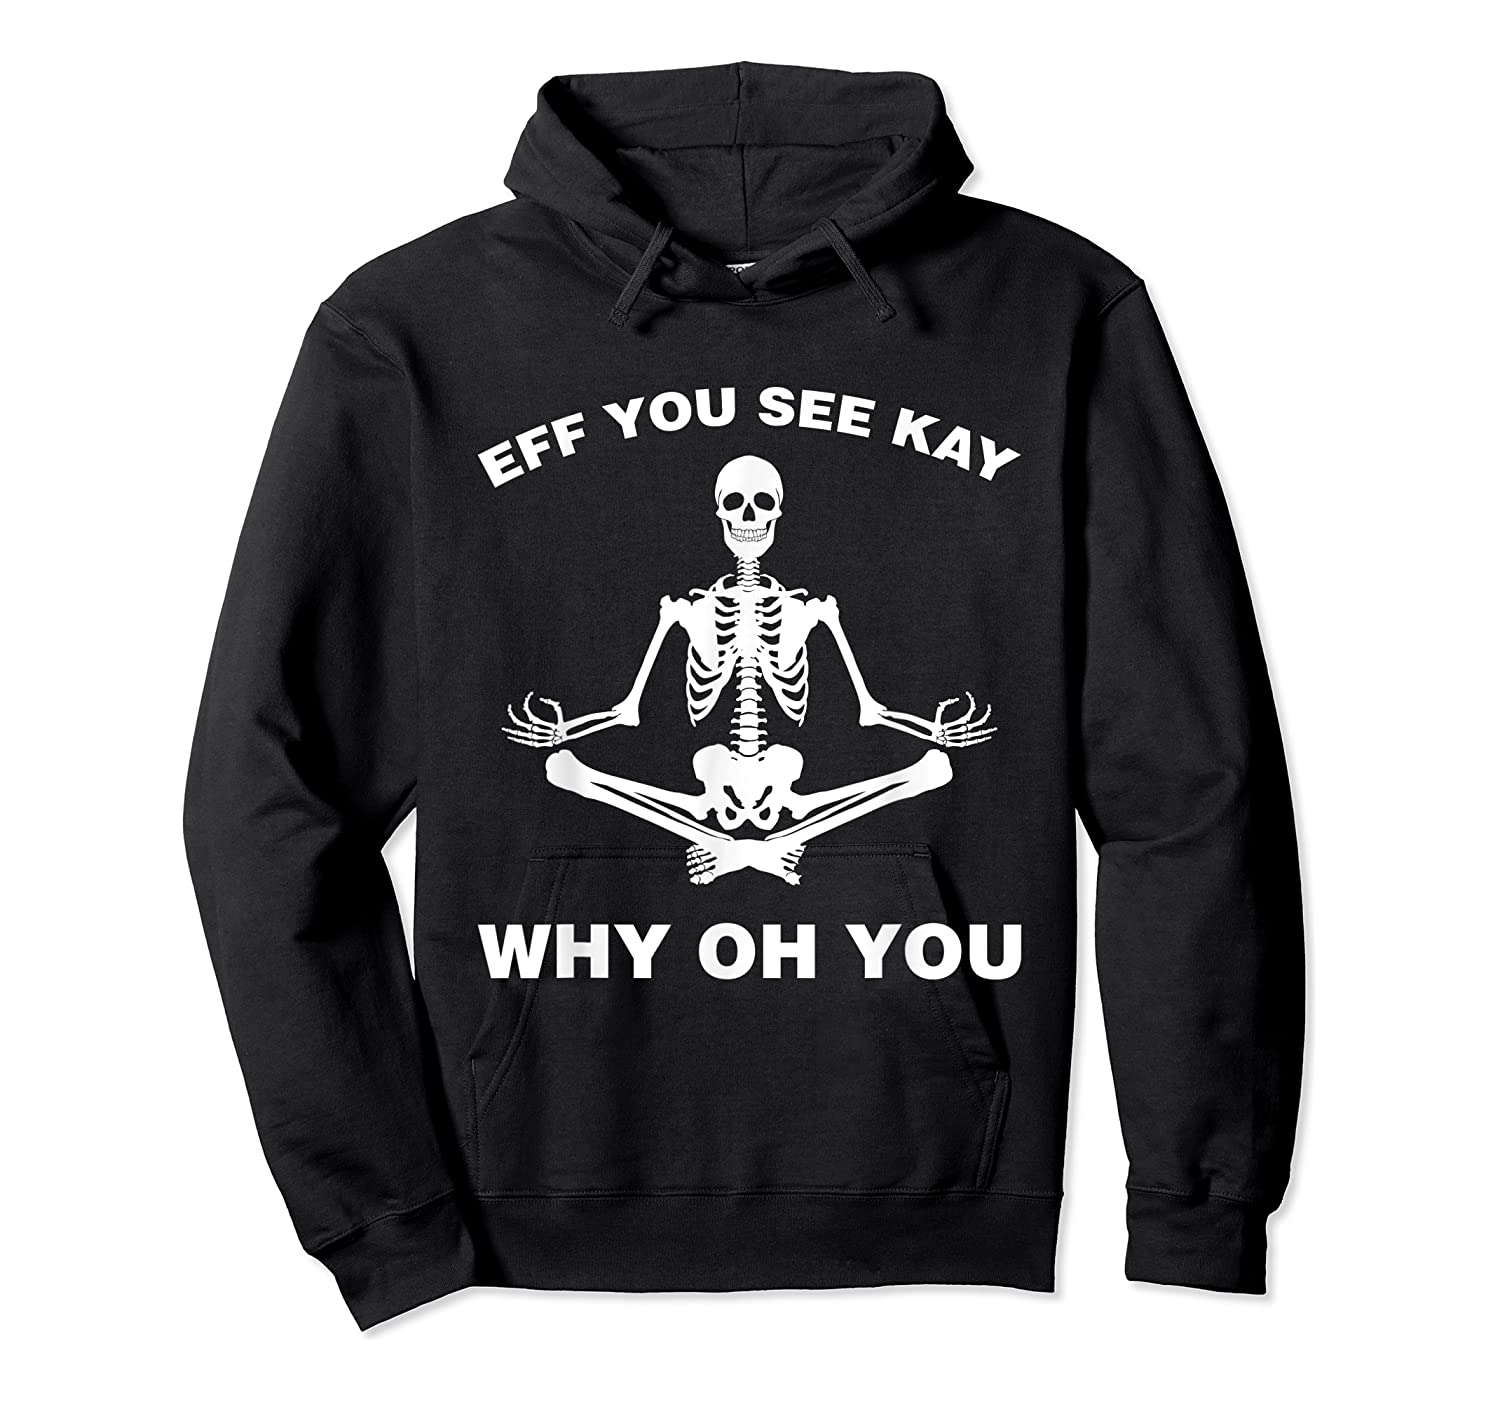 Eff You See Kay Why Oh You Skeleton T-shirt Unisex Pullover Hoodie